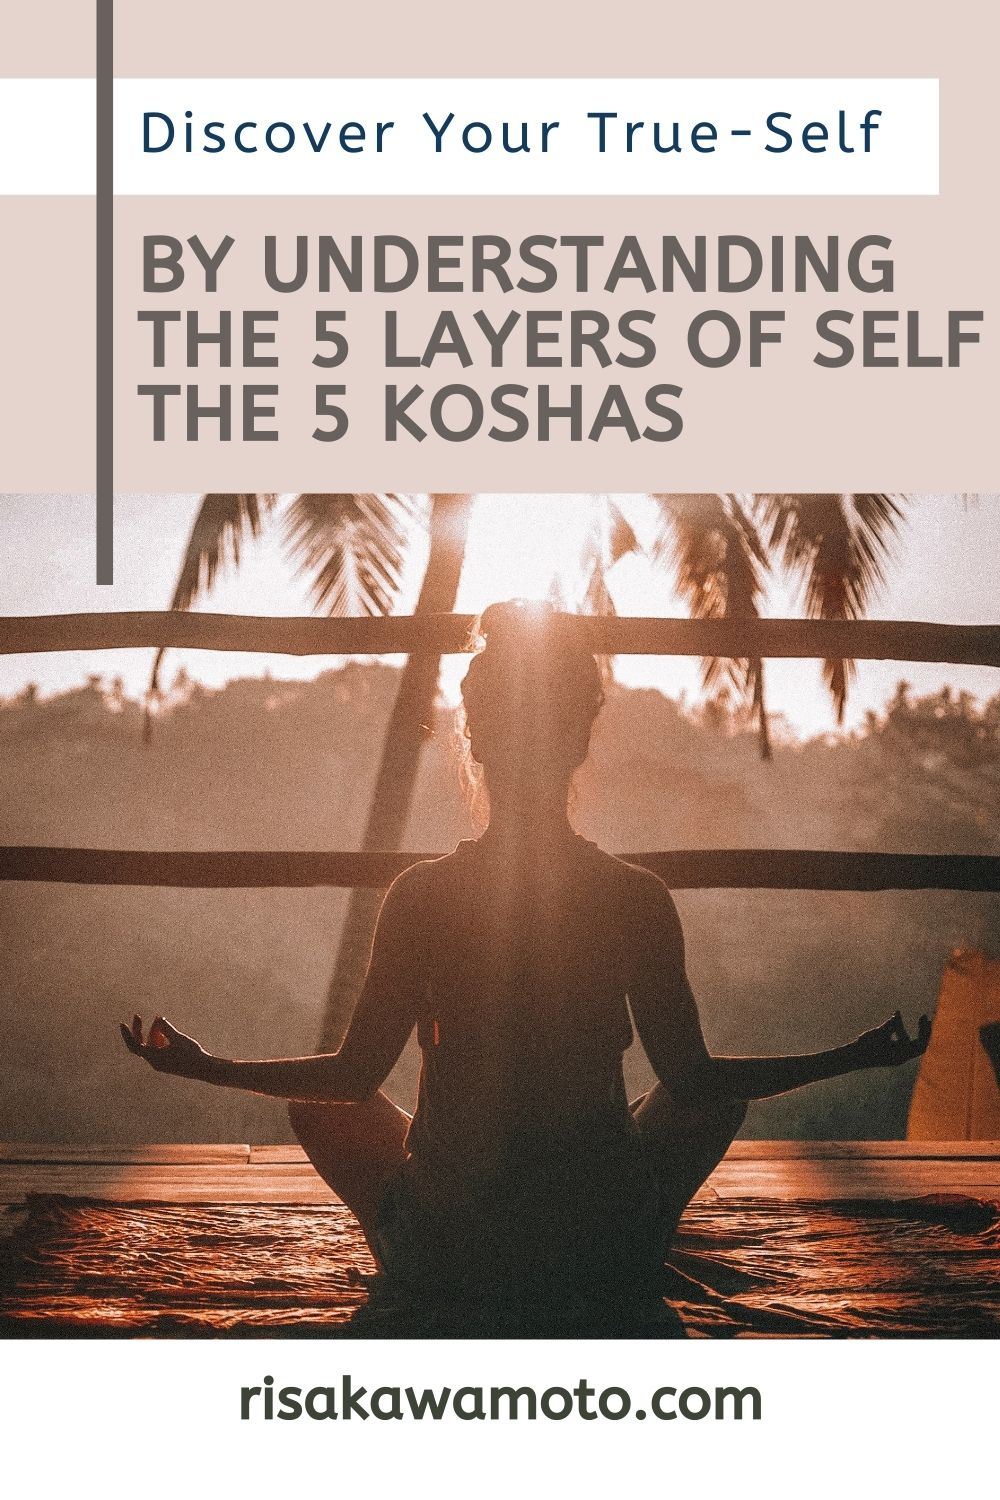 Discover Your True-Self by Understanding the 5 Layers of Self - the 5 Koshas